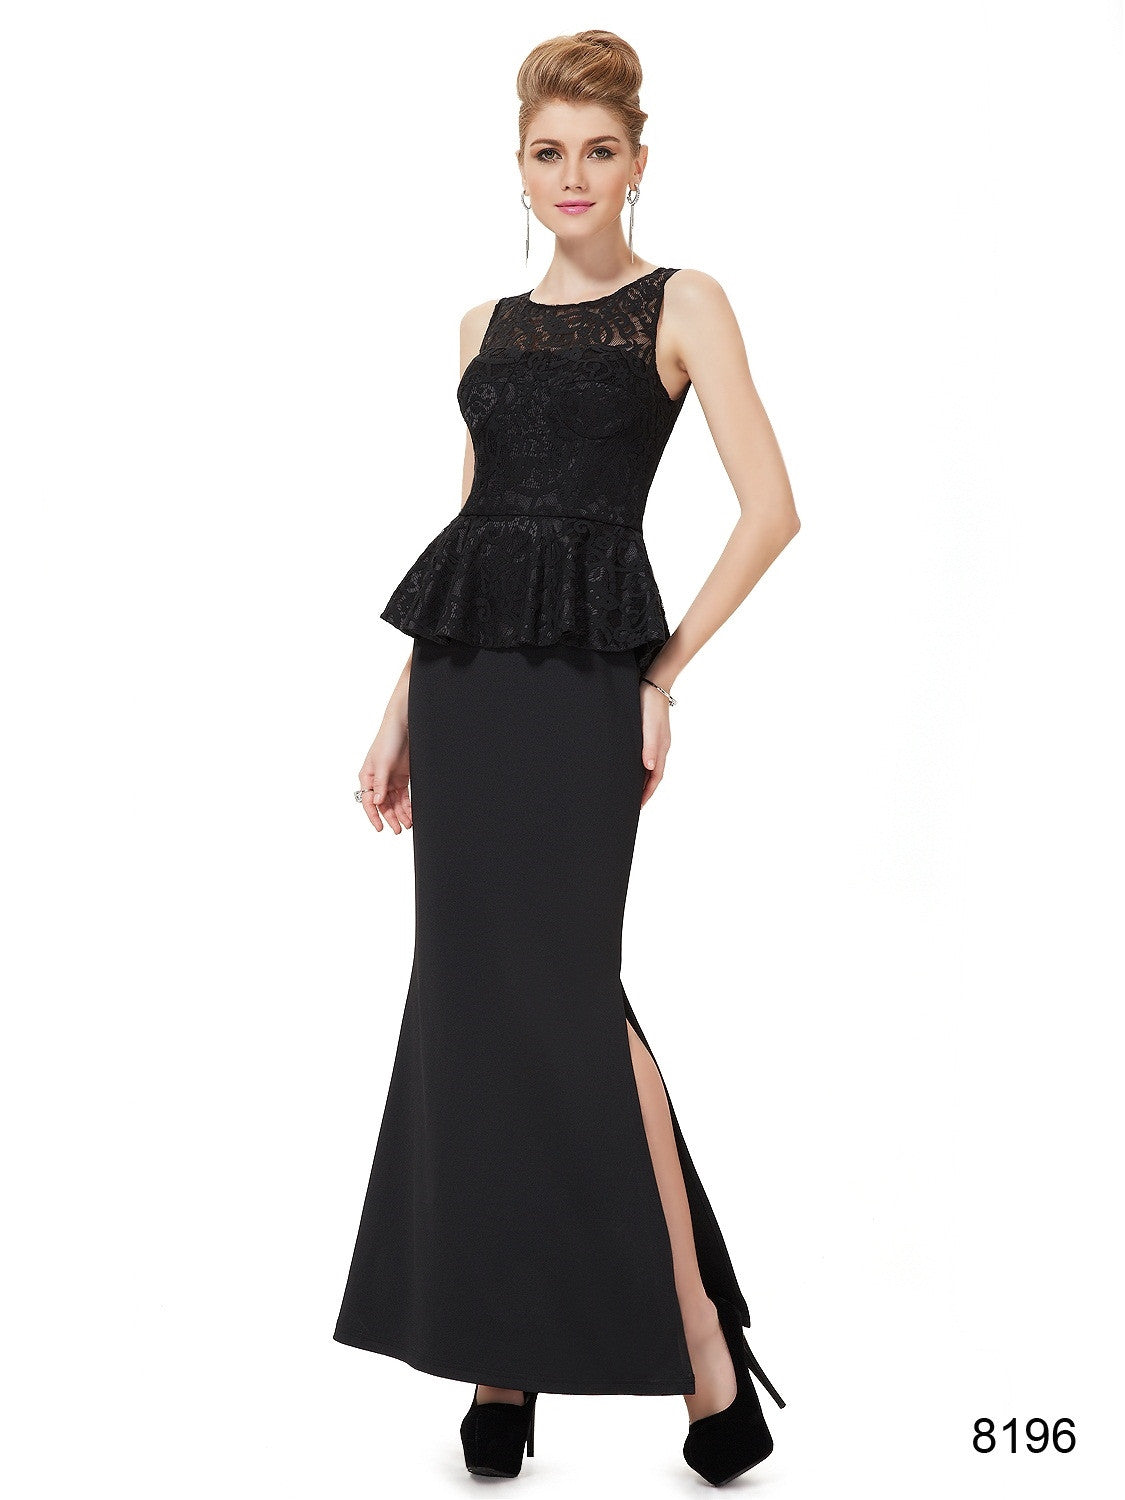 Sleeveless Black Evening Dress